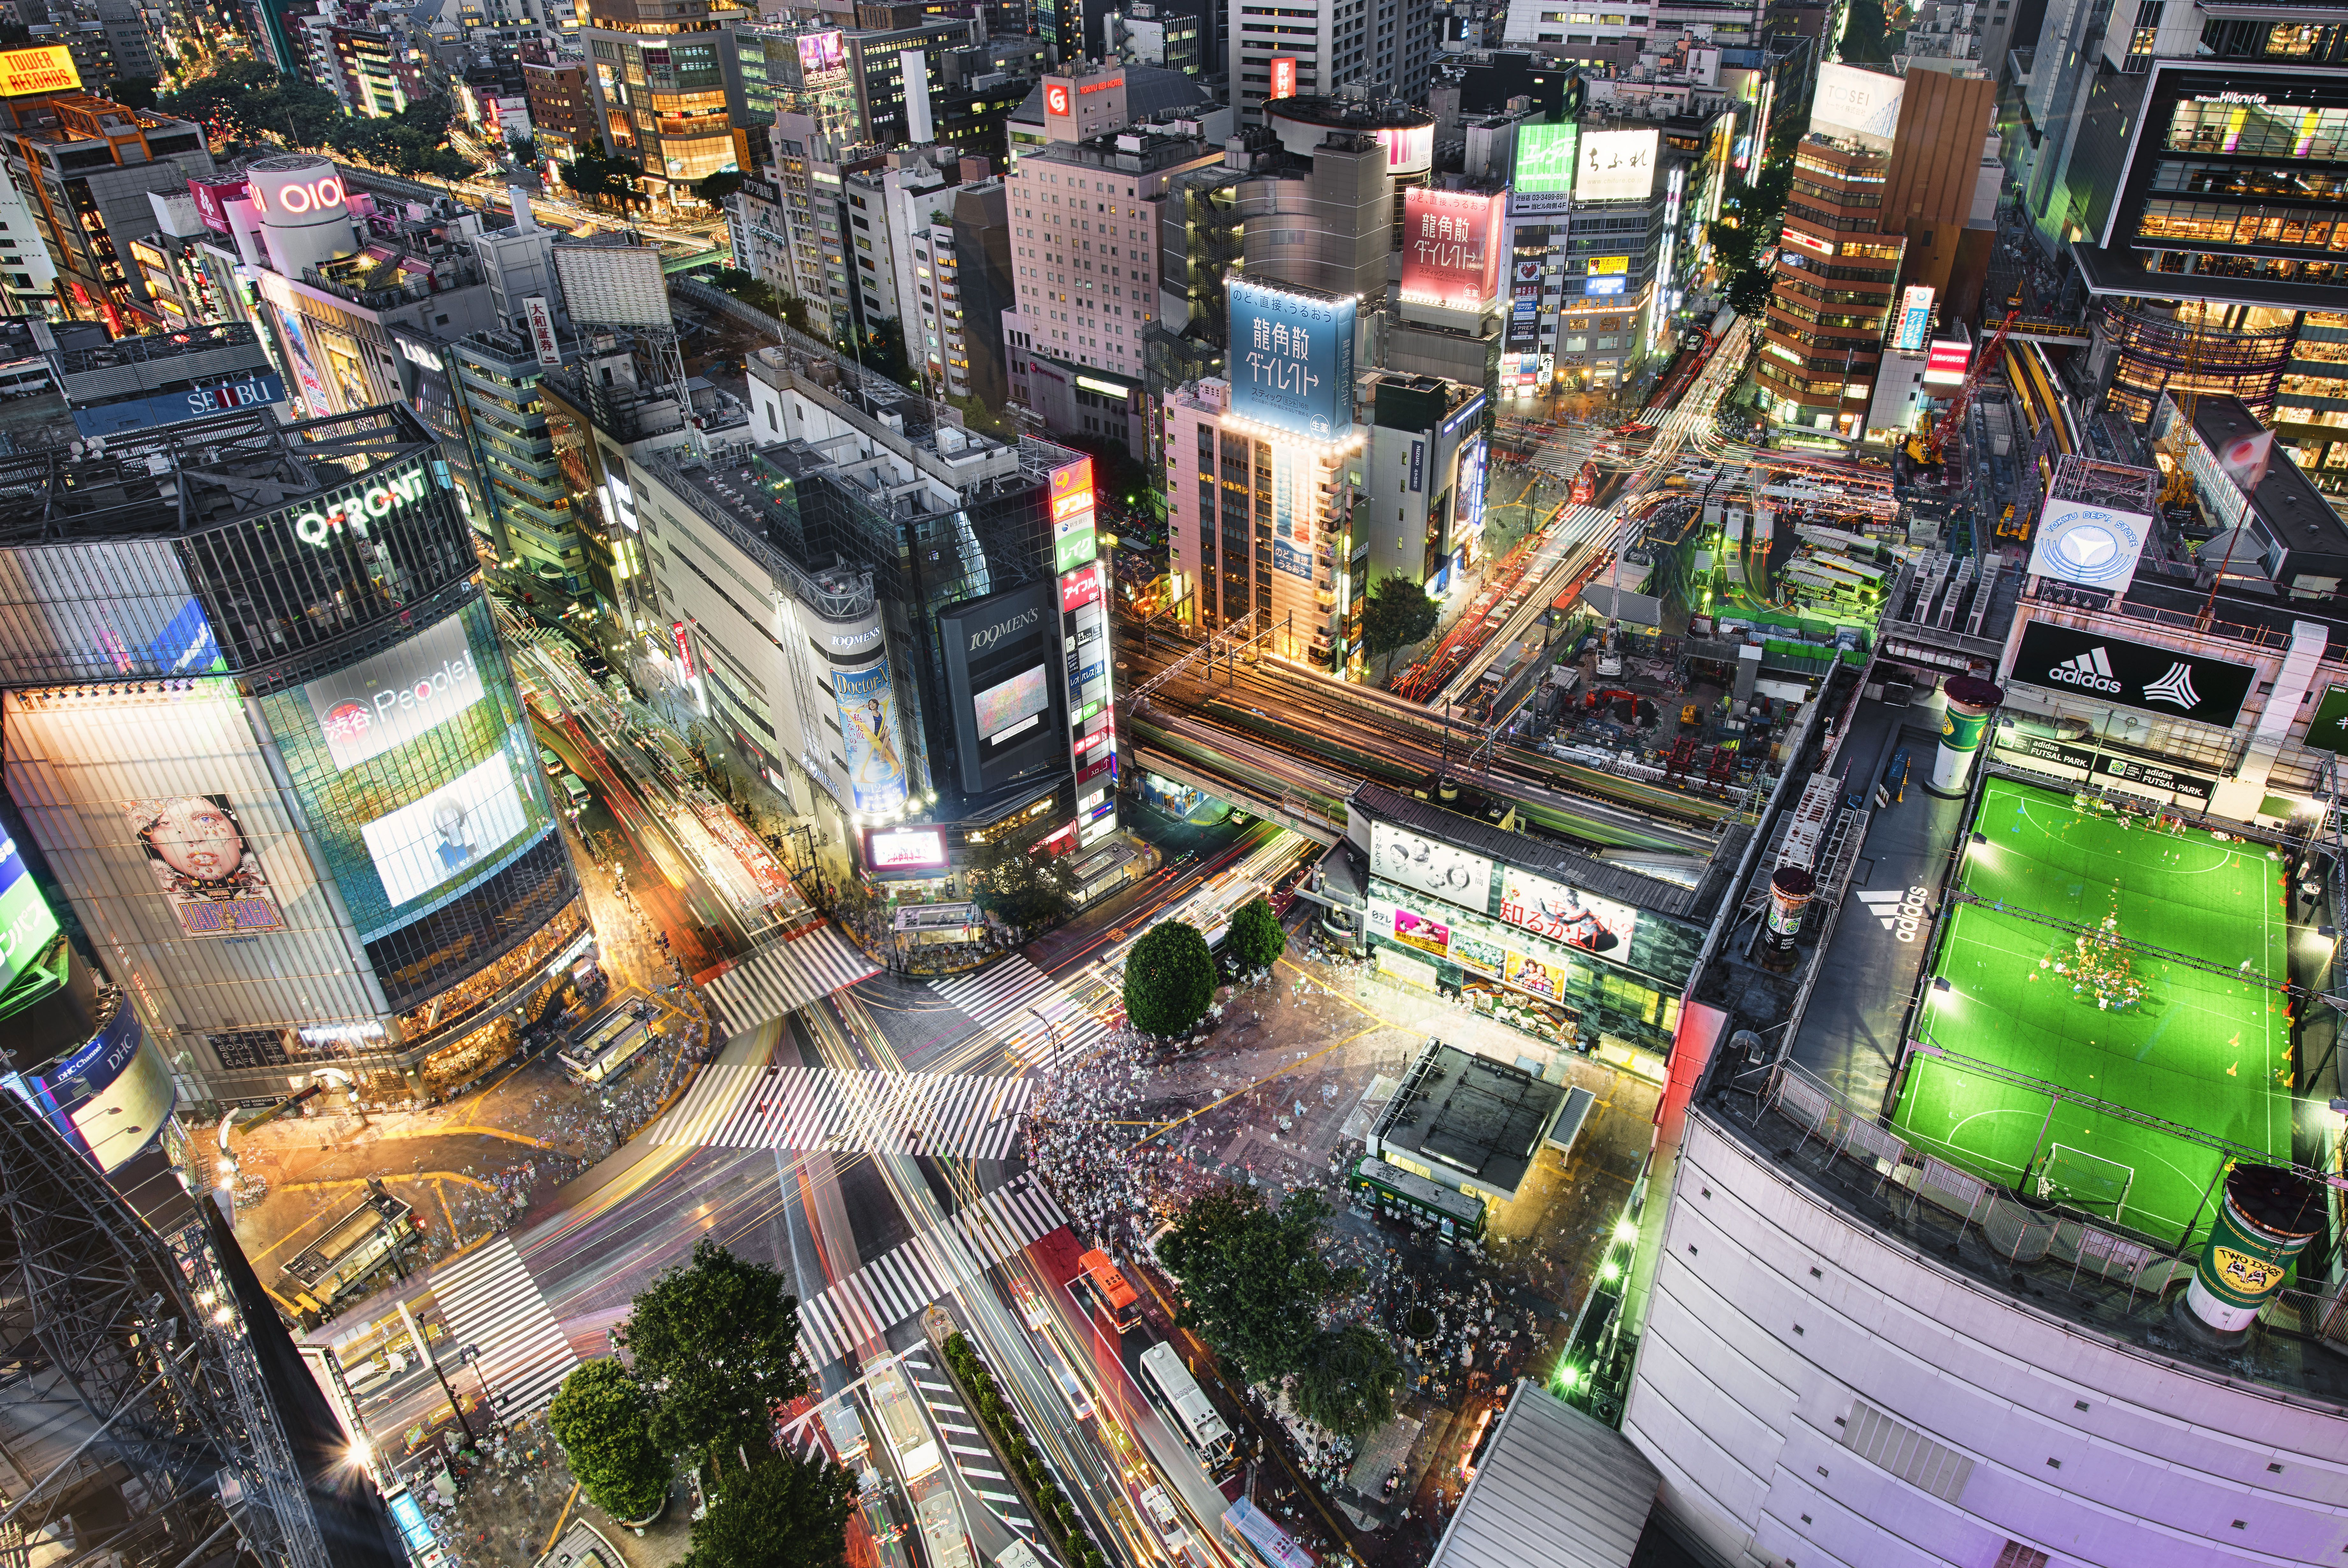 The famous Shibuya crossing - the busiest intersection in the world